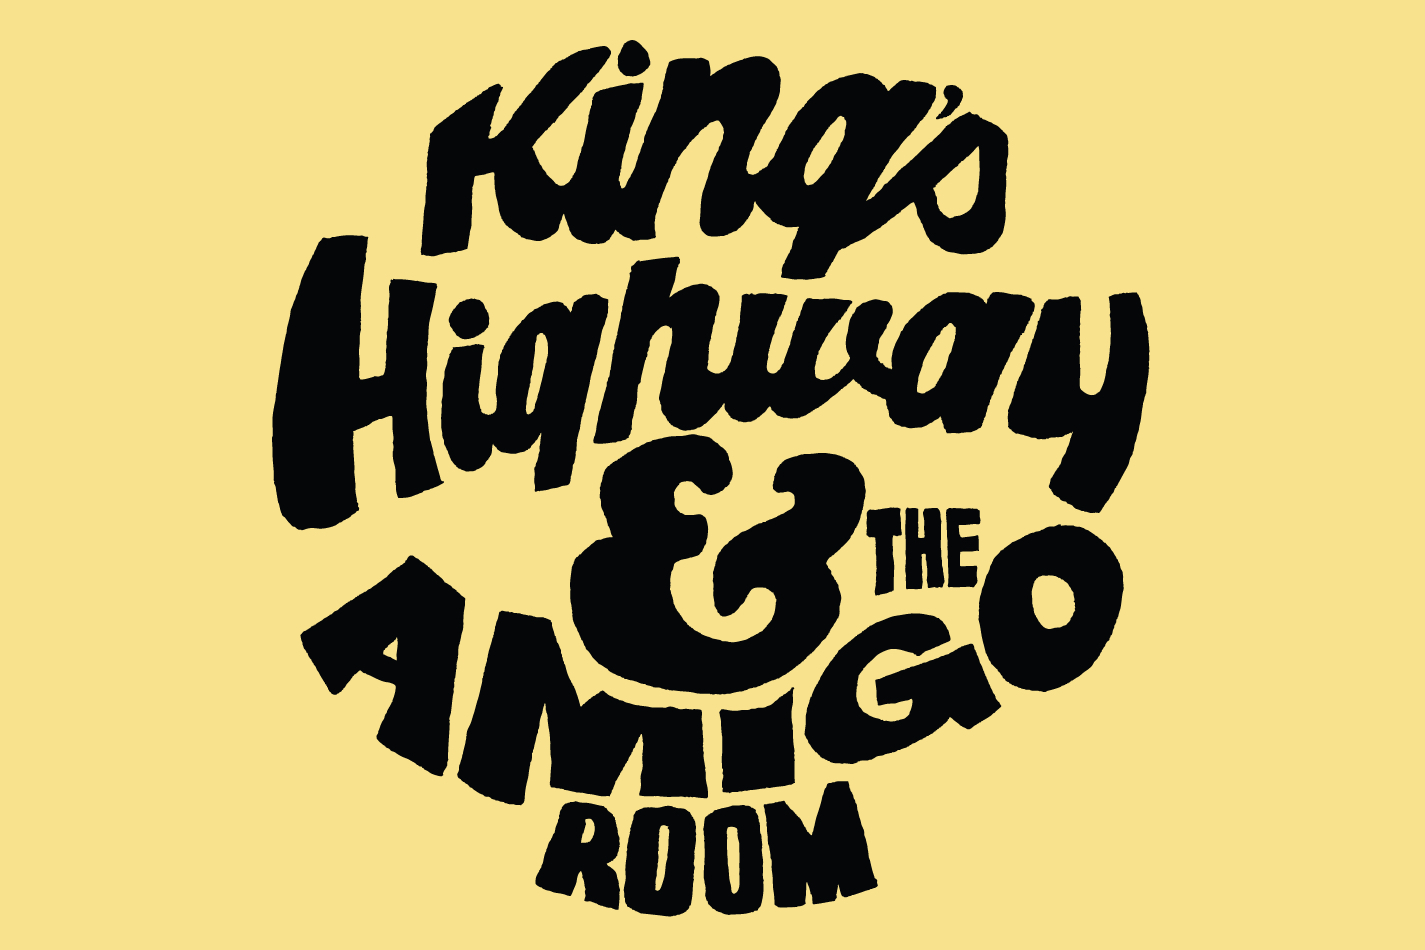 King's Highway and The Amigo Room